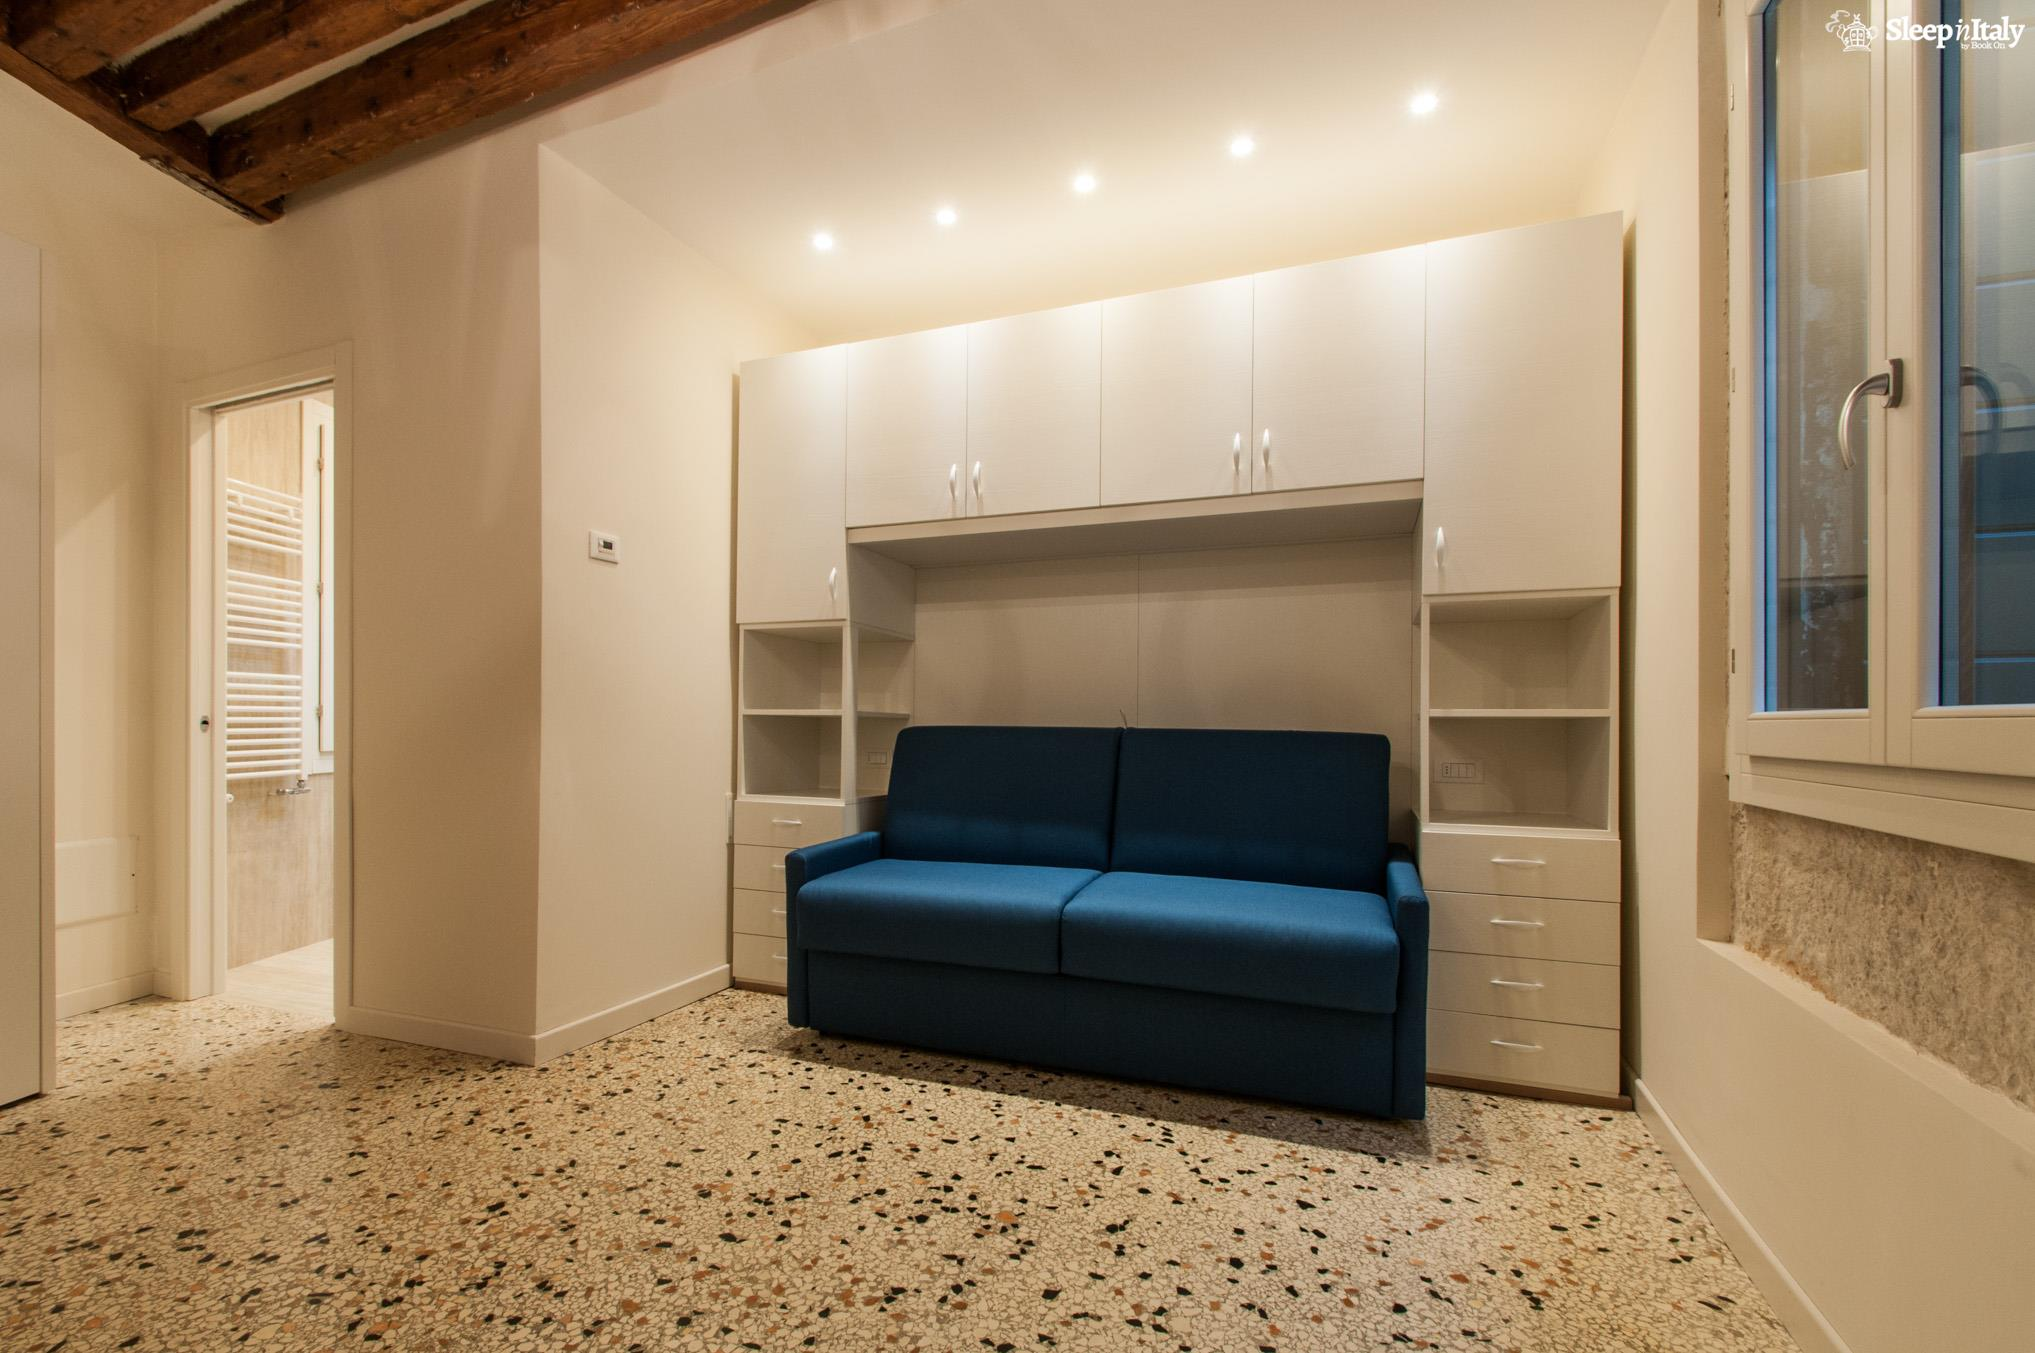 rialto sofa bed dfs furniture 2 seater sofas apartment in venice view blue sleepinitaly